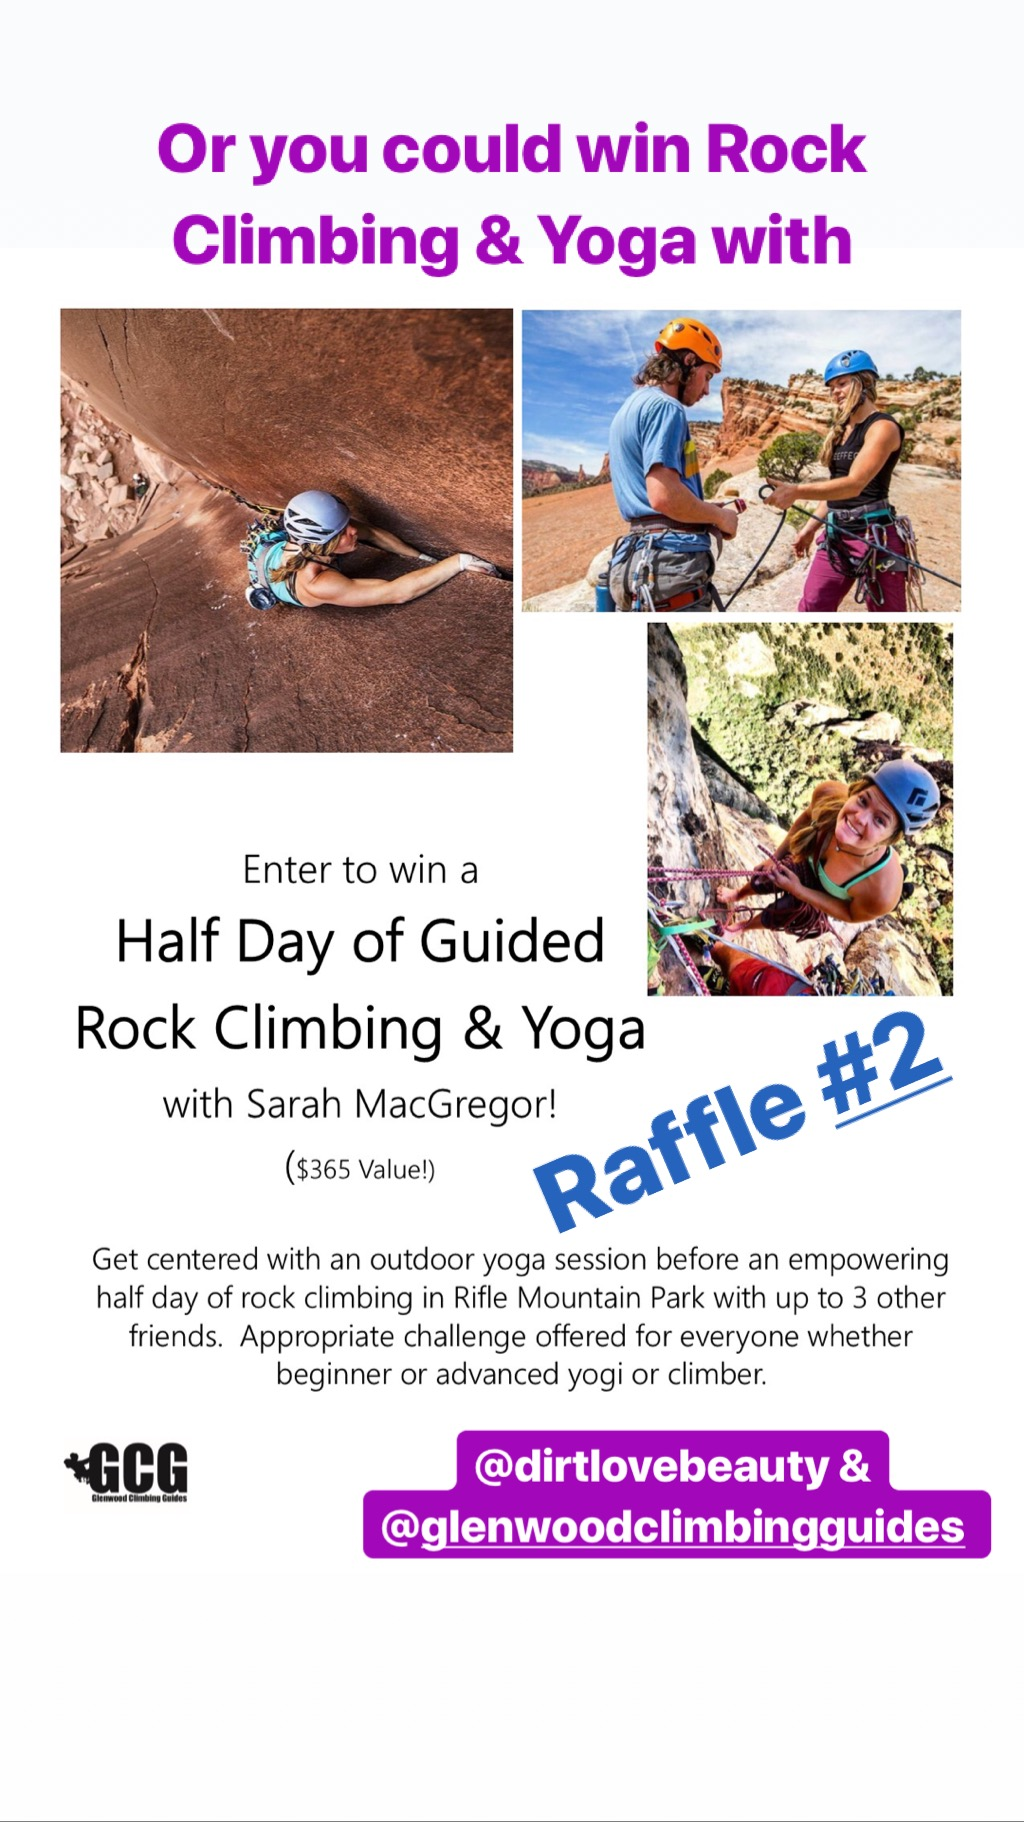 Raffle Prize #2 - A Half Day of Guided Rock Climbing and Yoga with Glenwood Climbing Guides and Sarah MacGregor